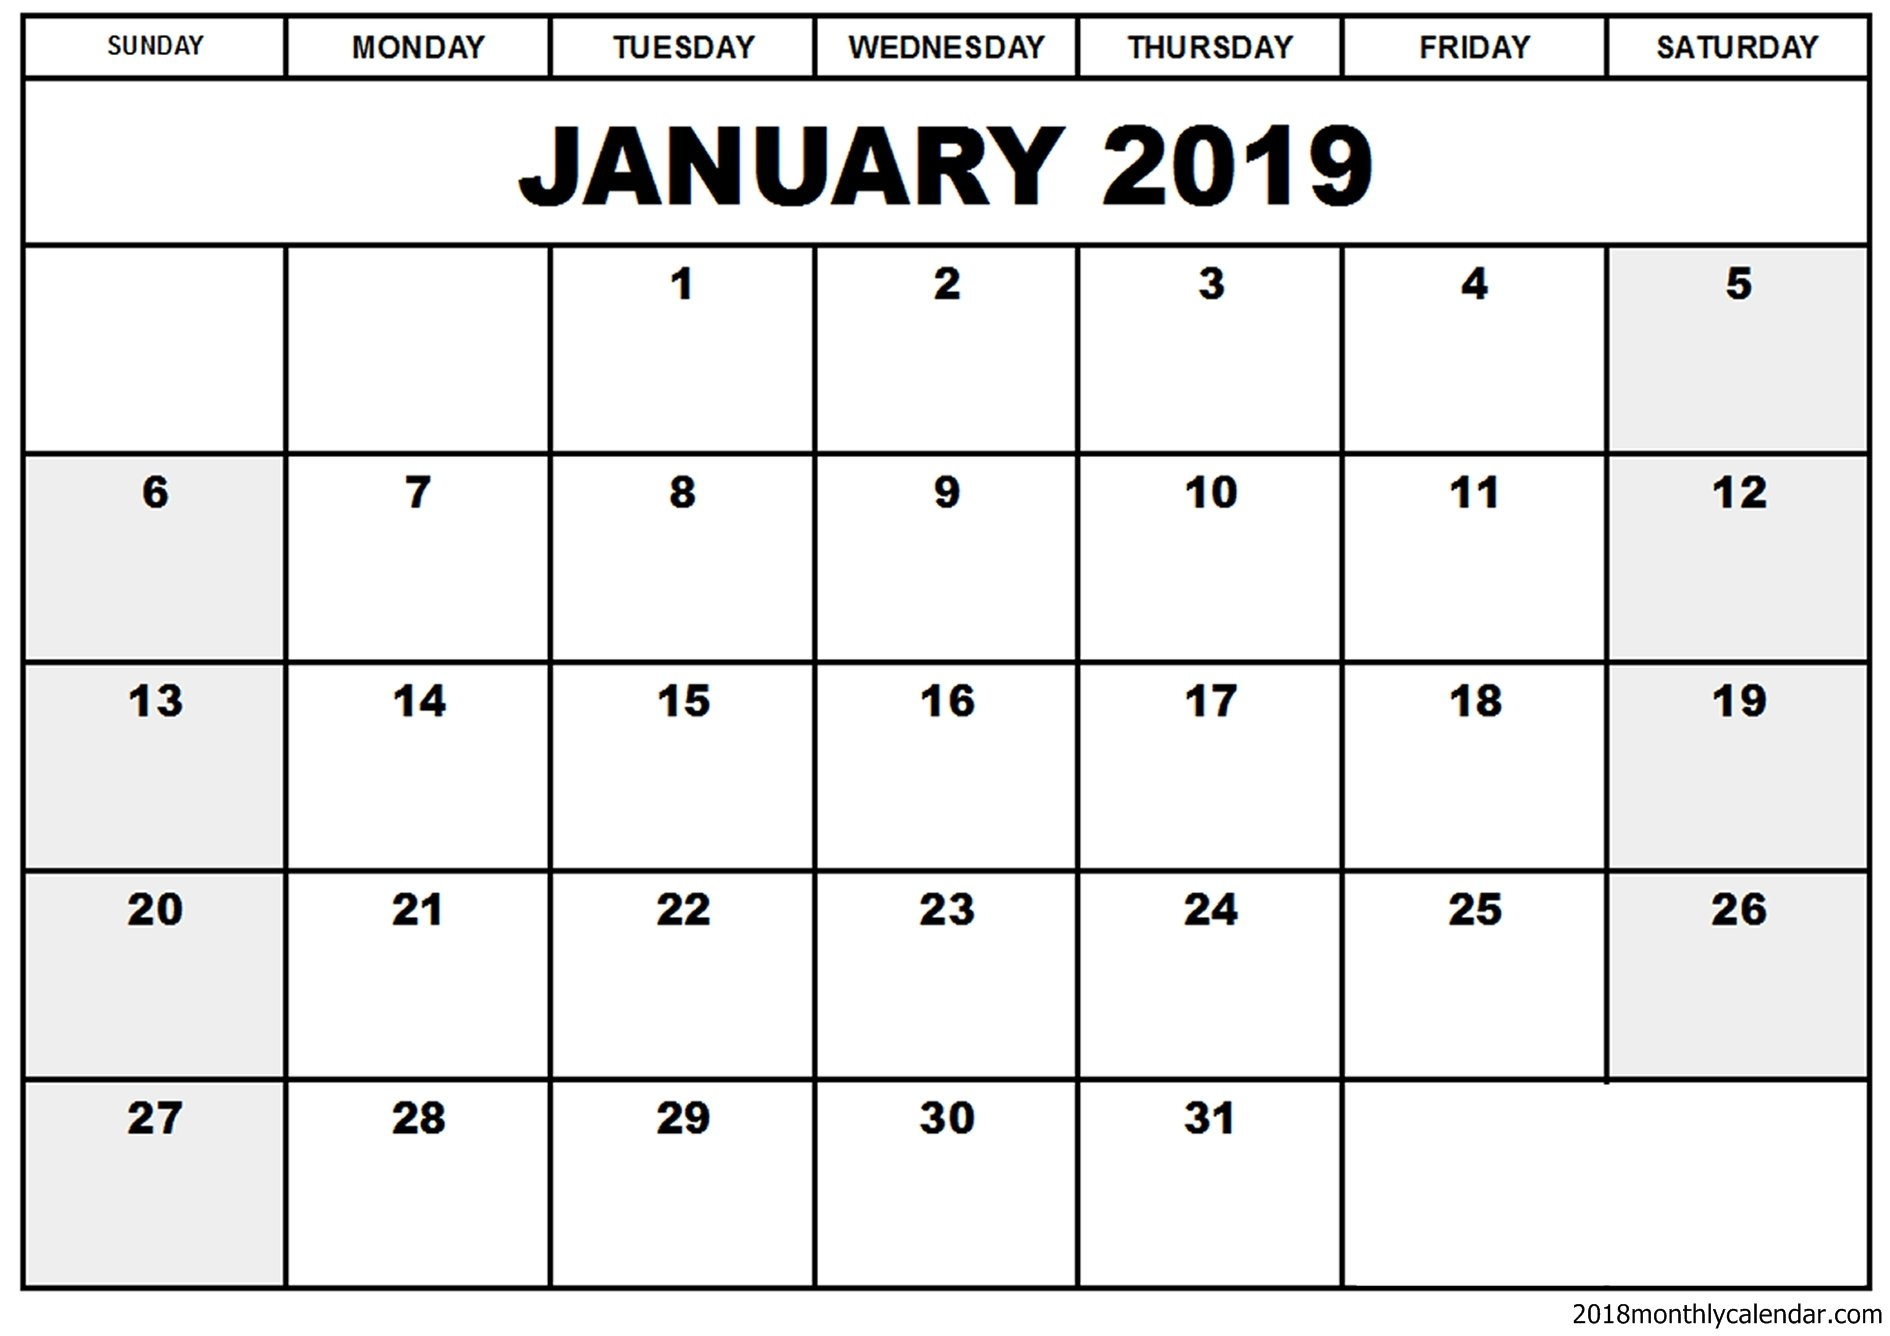 Free Printable January 2019 Editable Calendar [Download] | Printable Download A Calendar 2019